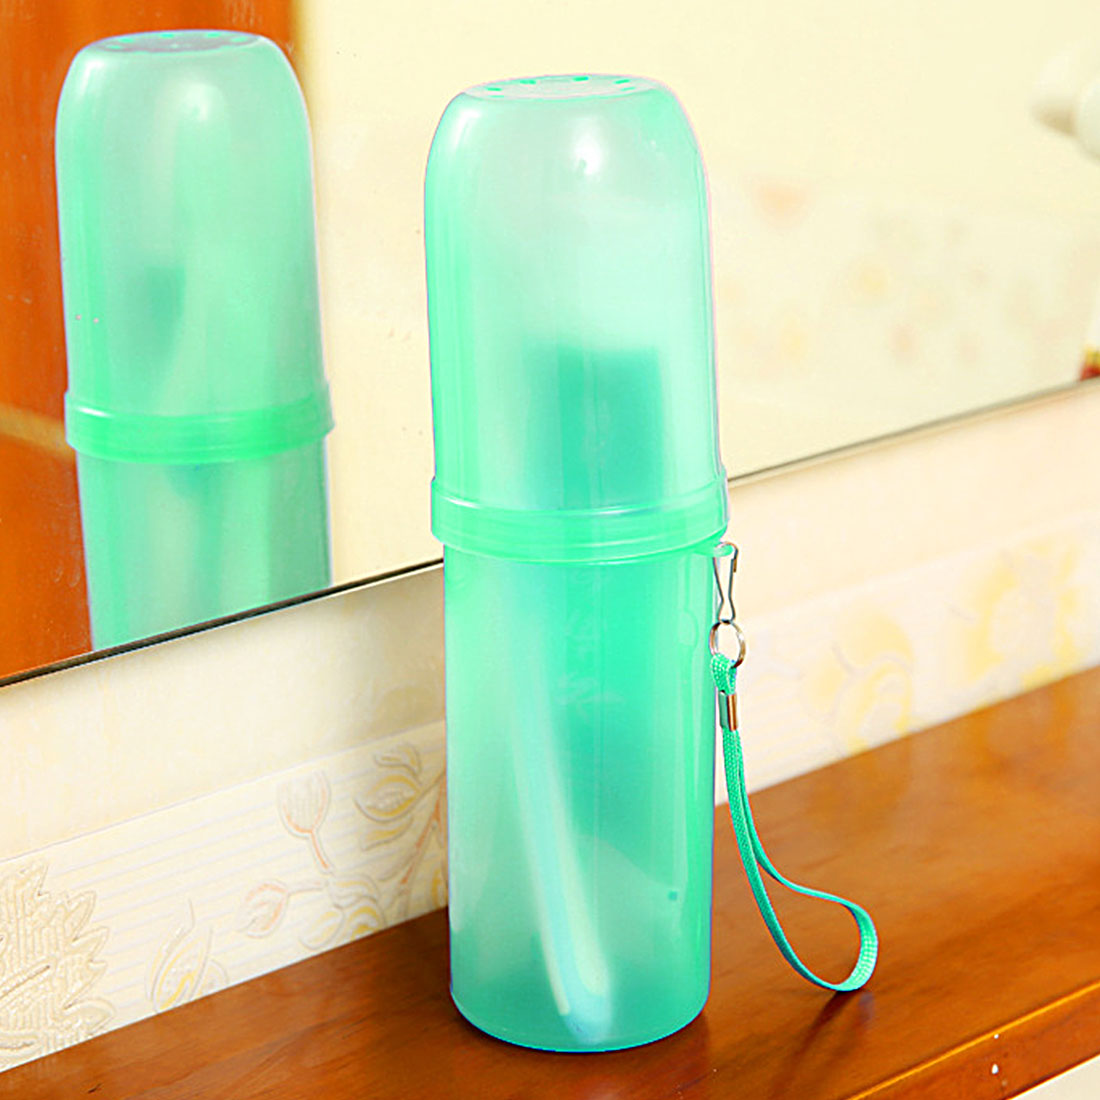 Top Sale Portable Toothbrush Holder Toothpaste Tower Tooth Case Cover Cup Bath Travel Outdoor Personal Clean Tool